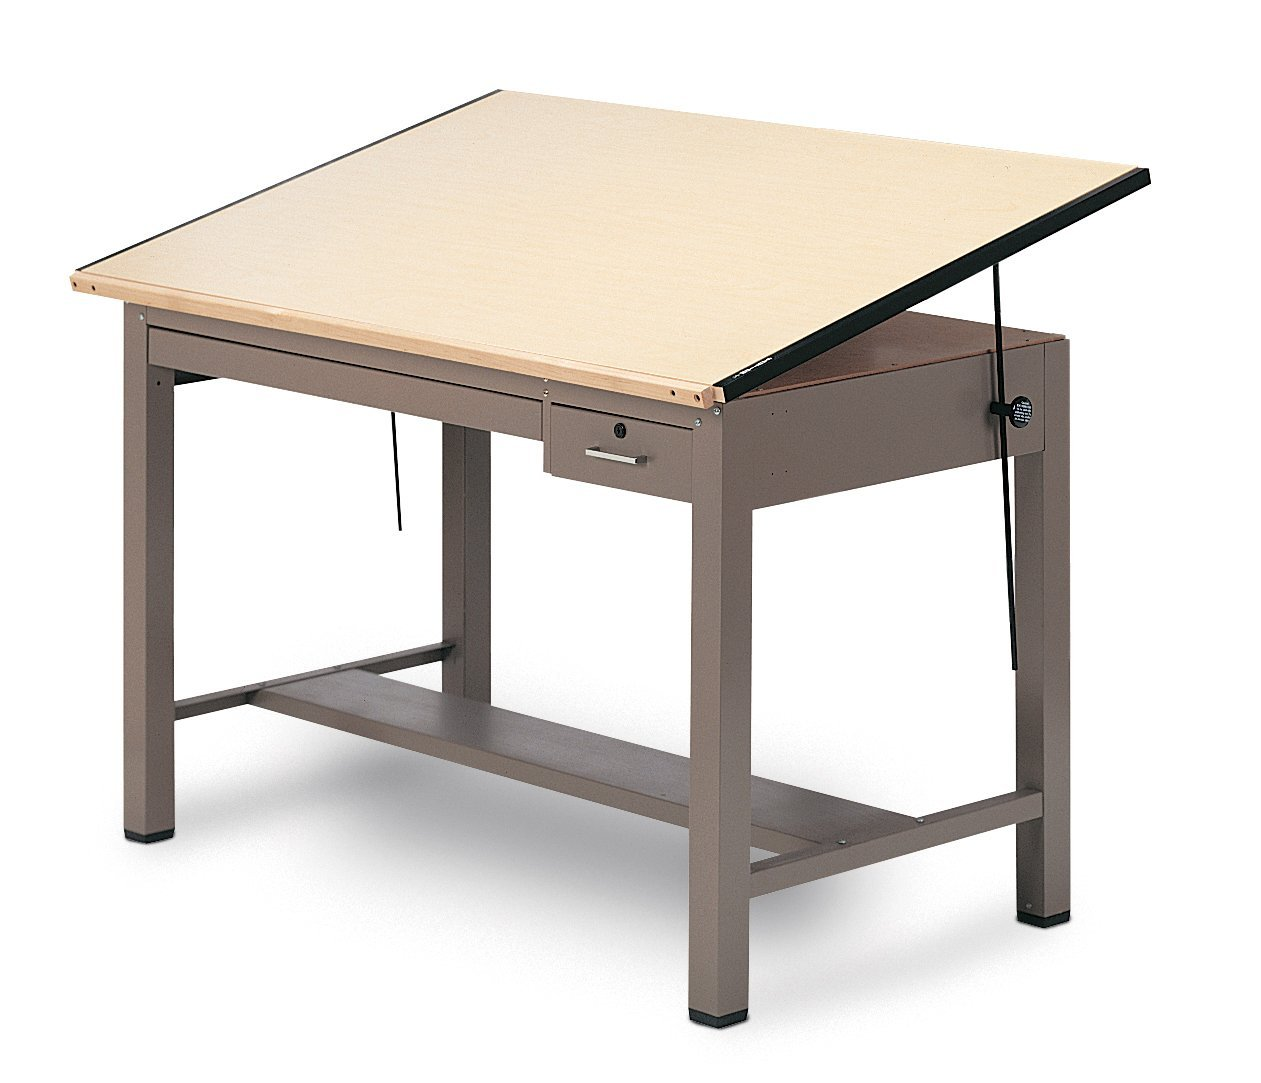 Exceptionnel Amazon.com: Mayline Drafting Table With Tool And Shallow Drawers, Desert  Sage Paint/Birch Laminate/Laminate Selfedge Edge: Kitchen U0026 Dining